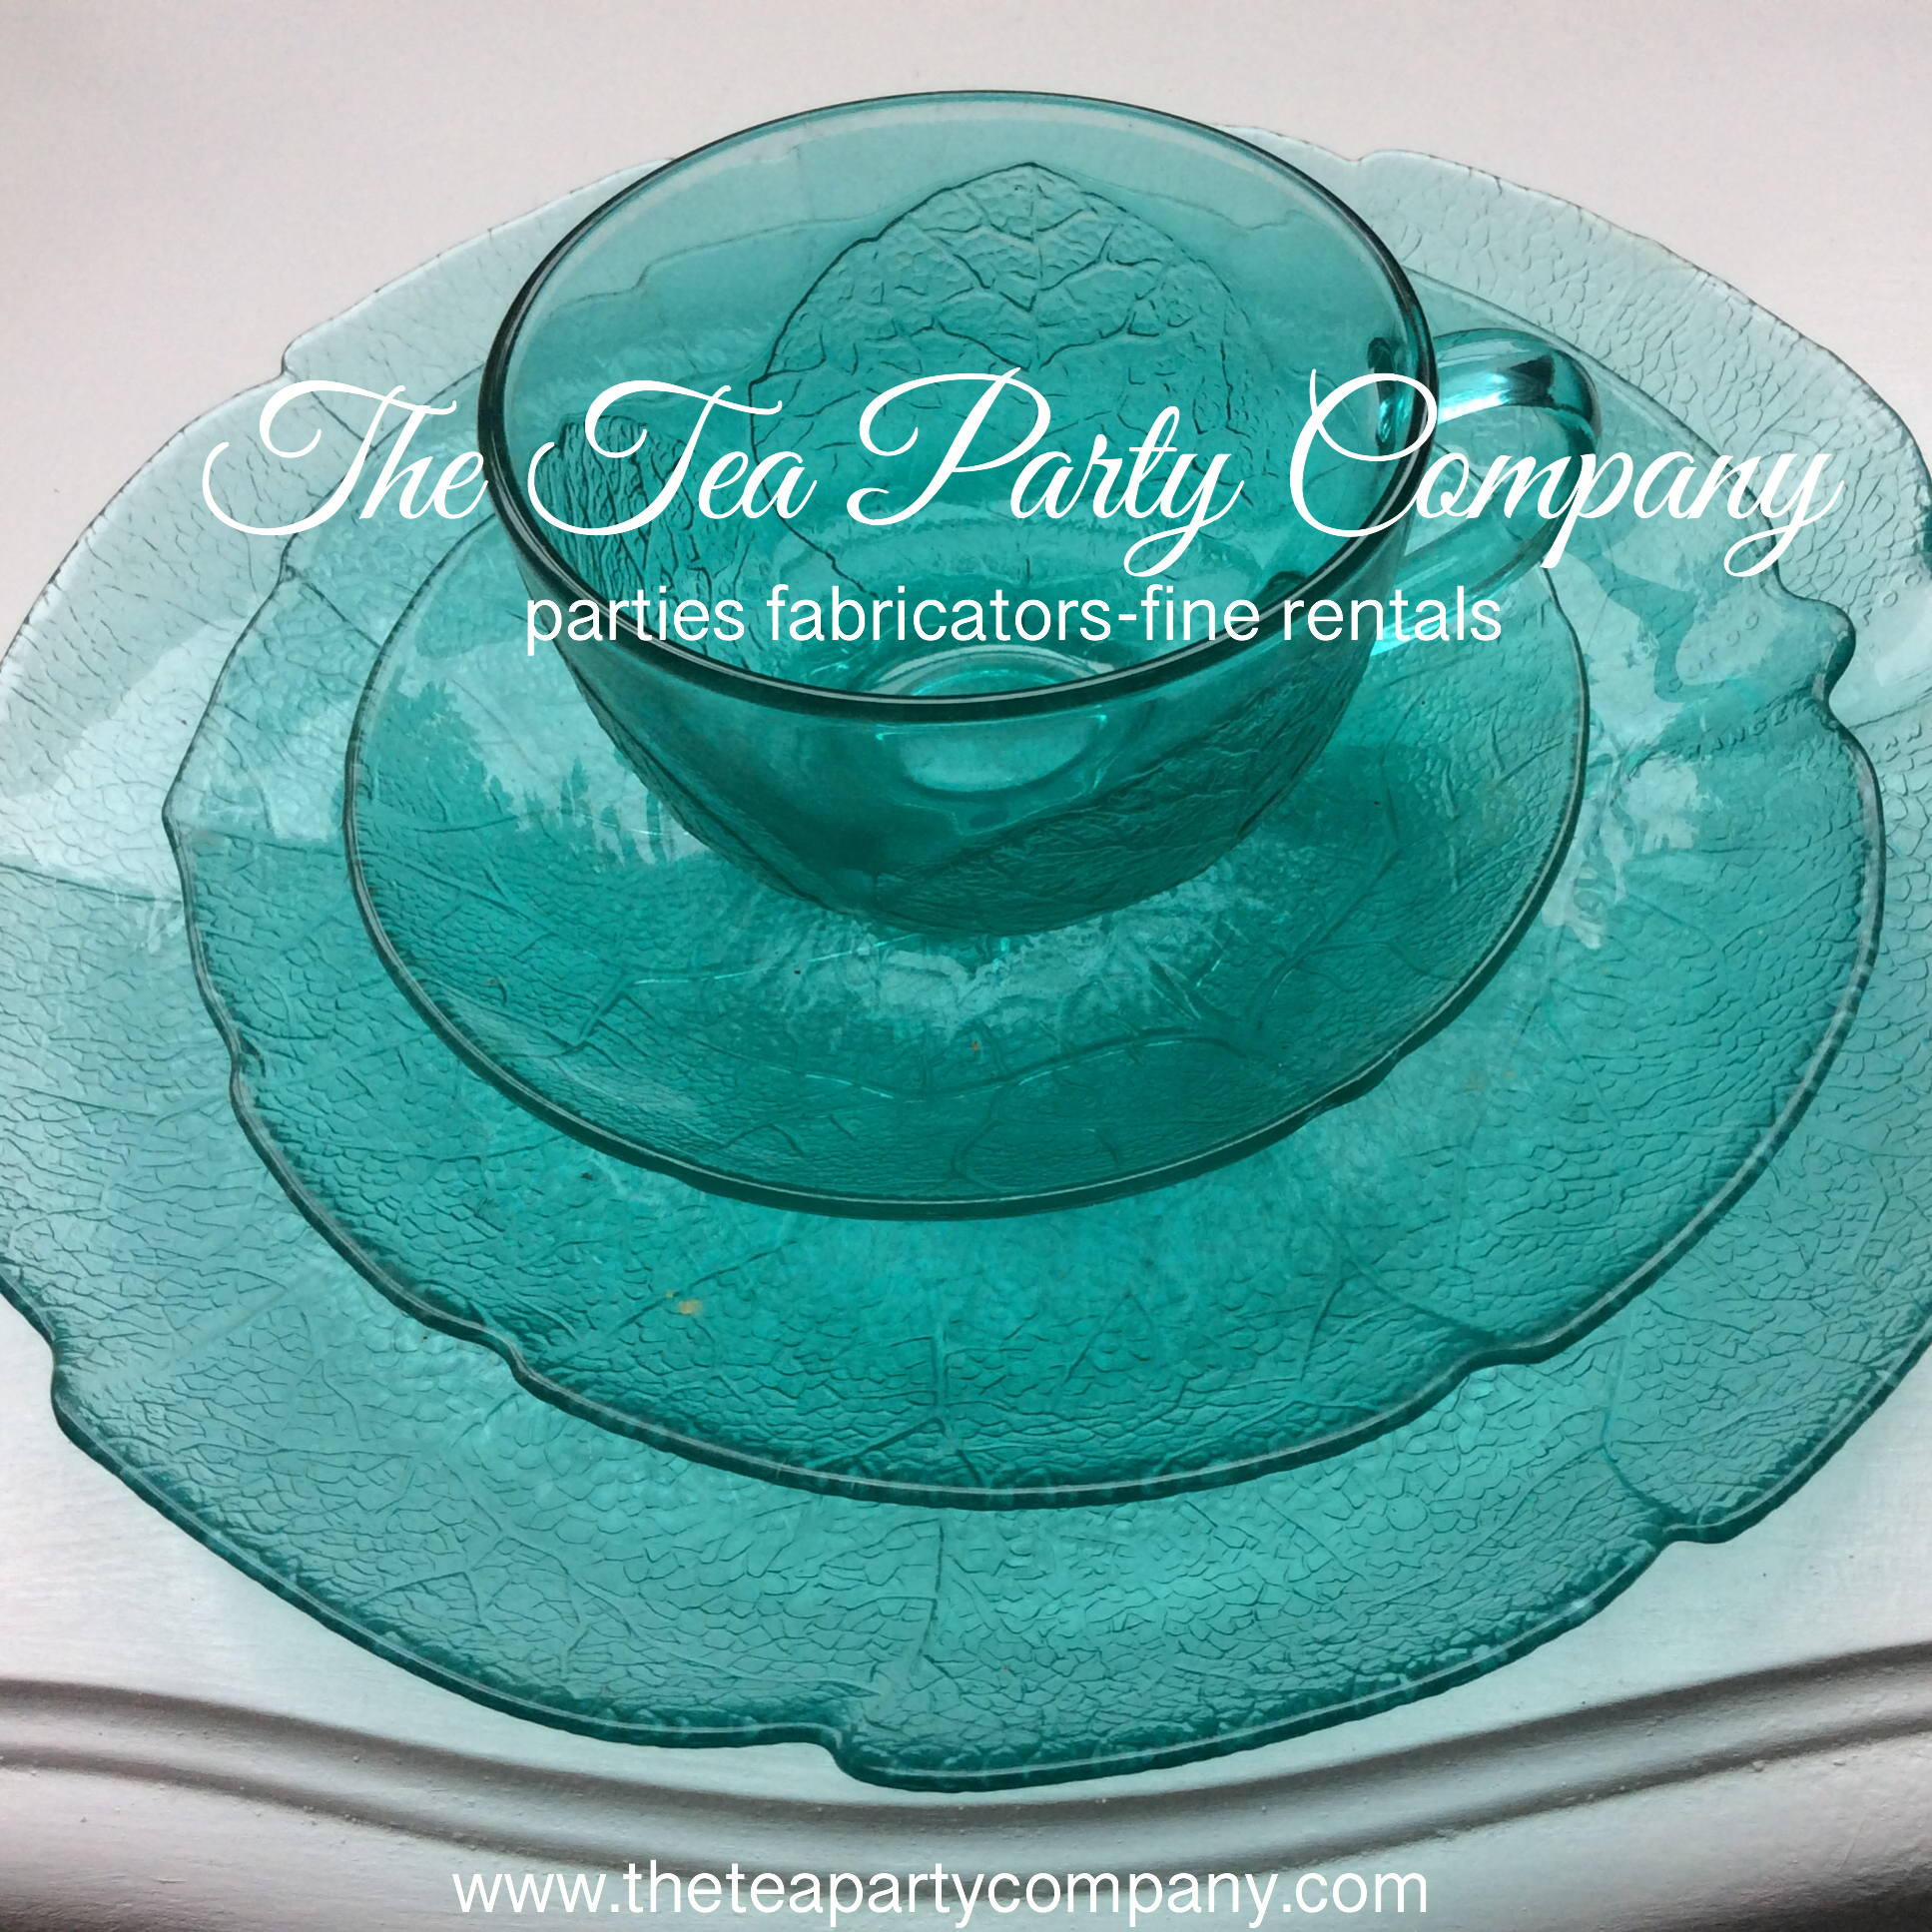 Aqua Depression Vintage Set Teacup